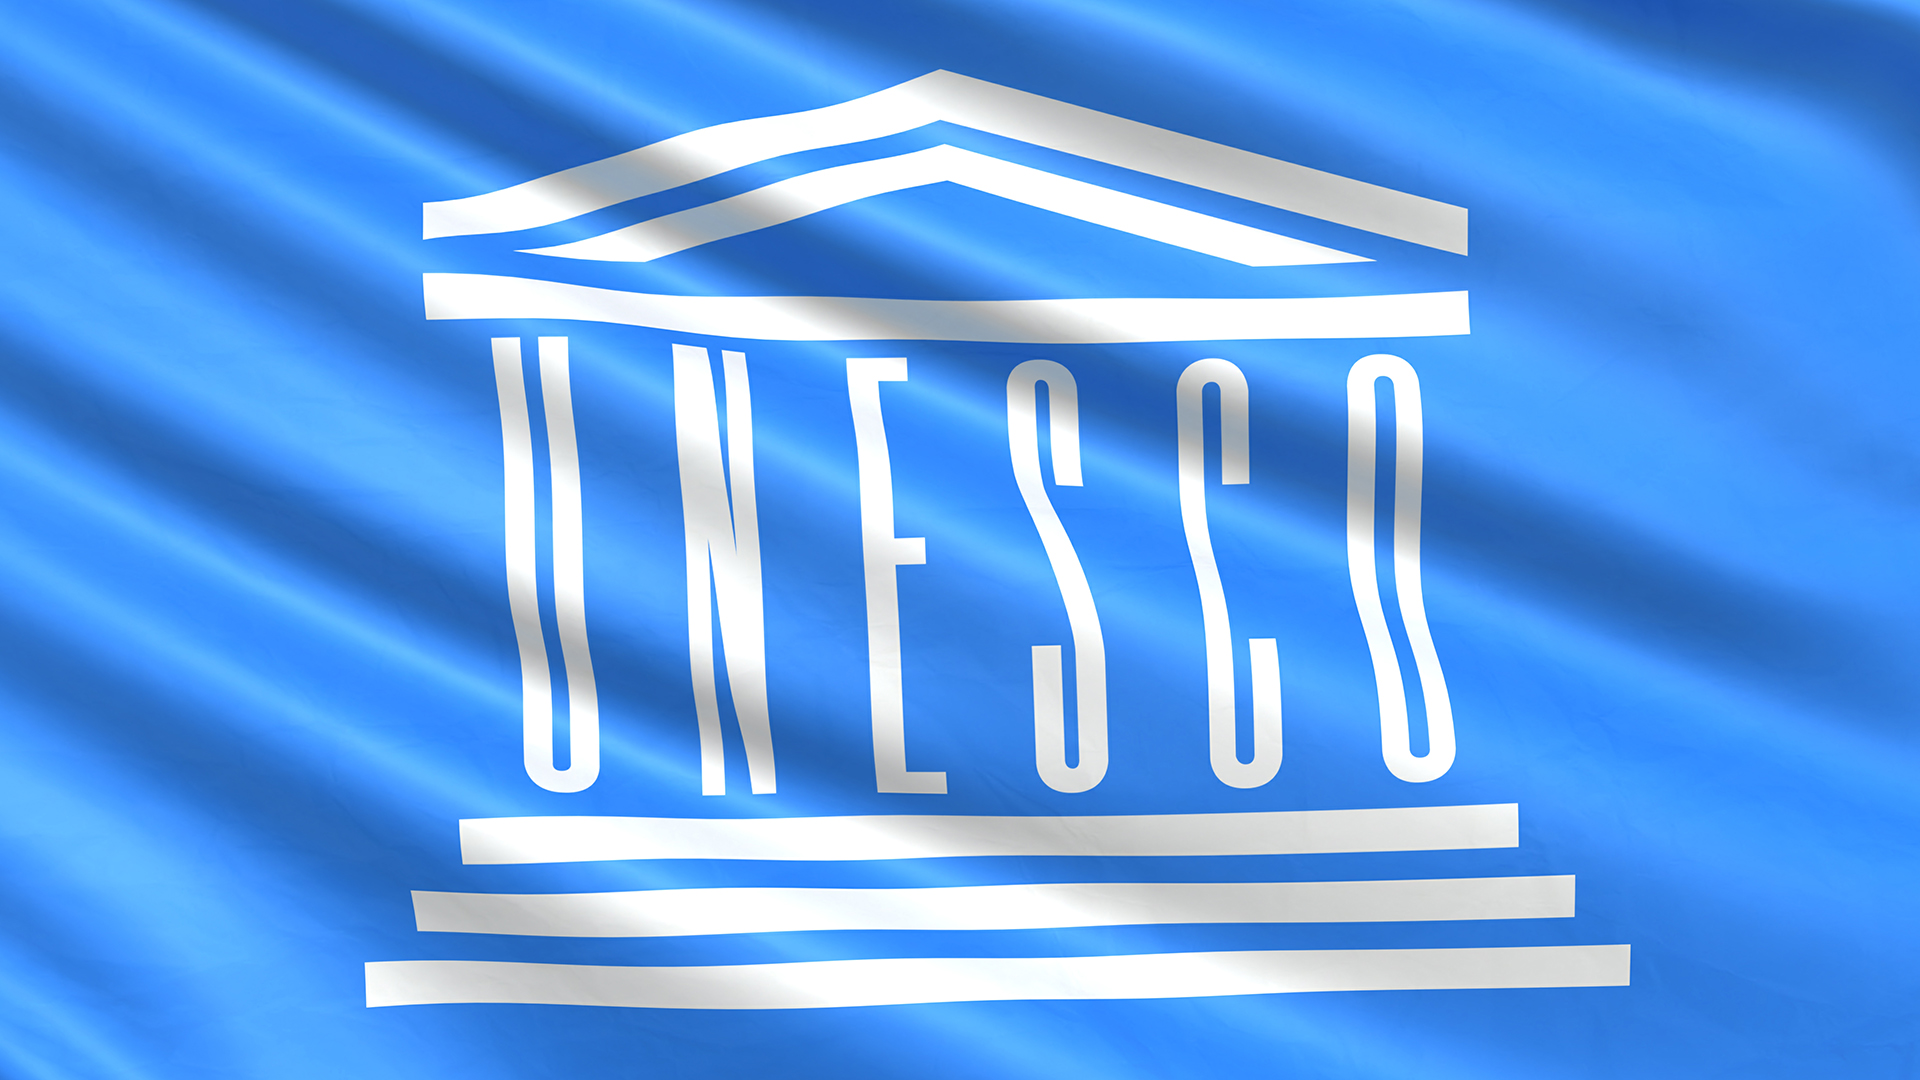 unesco flag